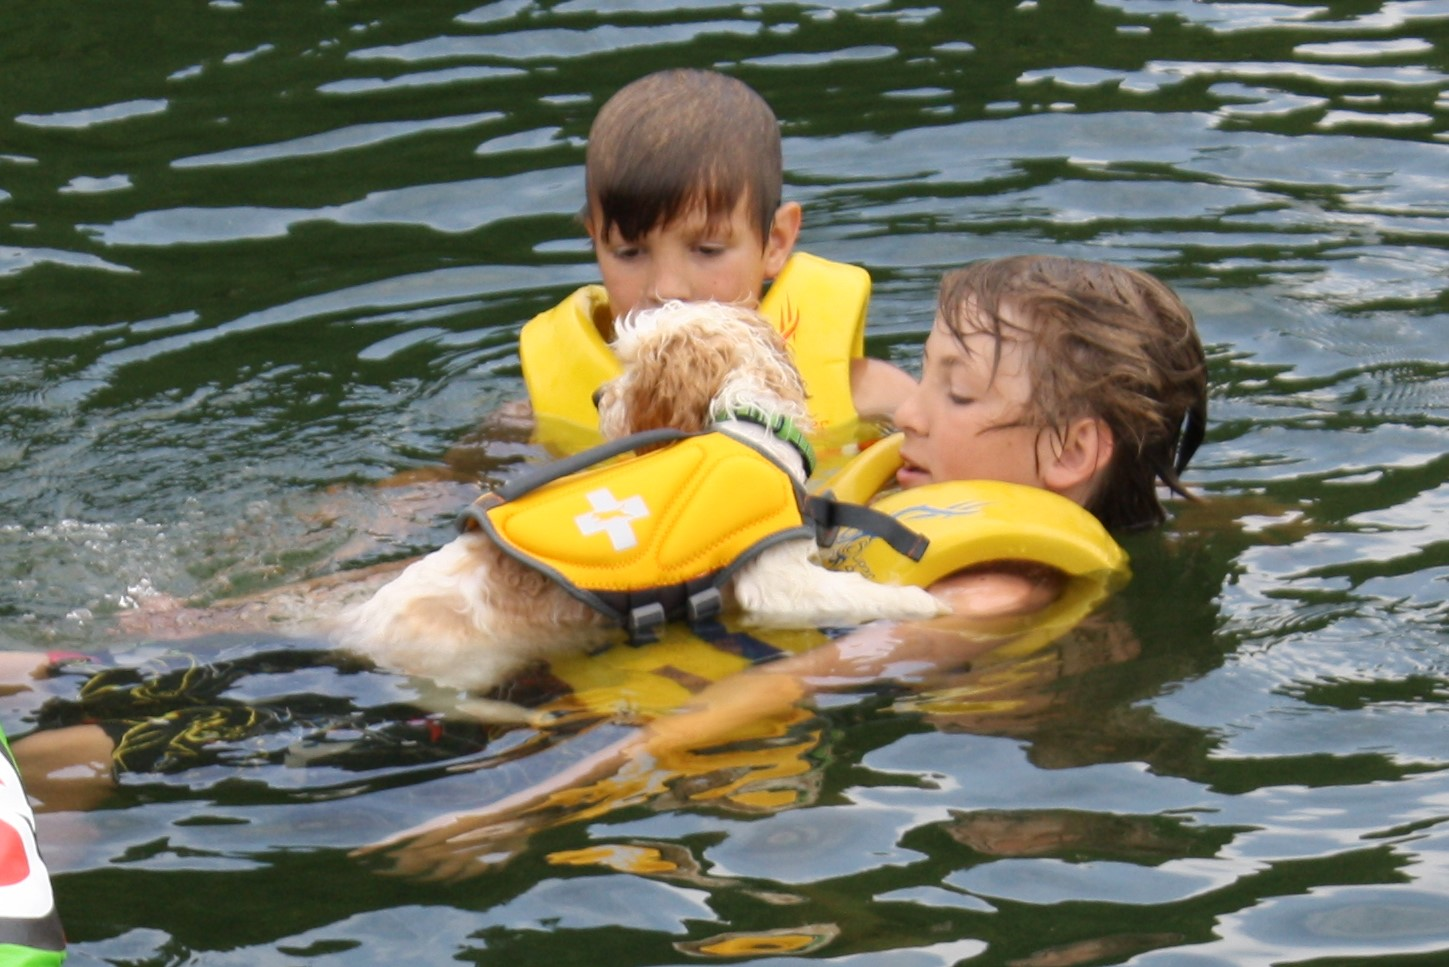 I believe that kids who grow up with a great dog, yes, like a Cavachon, learn the nurturing skills that will make them better parents. Look at the loving concern these little brothers show while helping their new puppy learn to swim. Priceless!